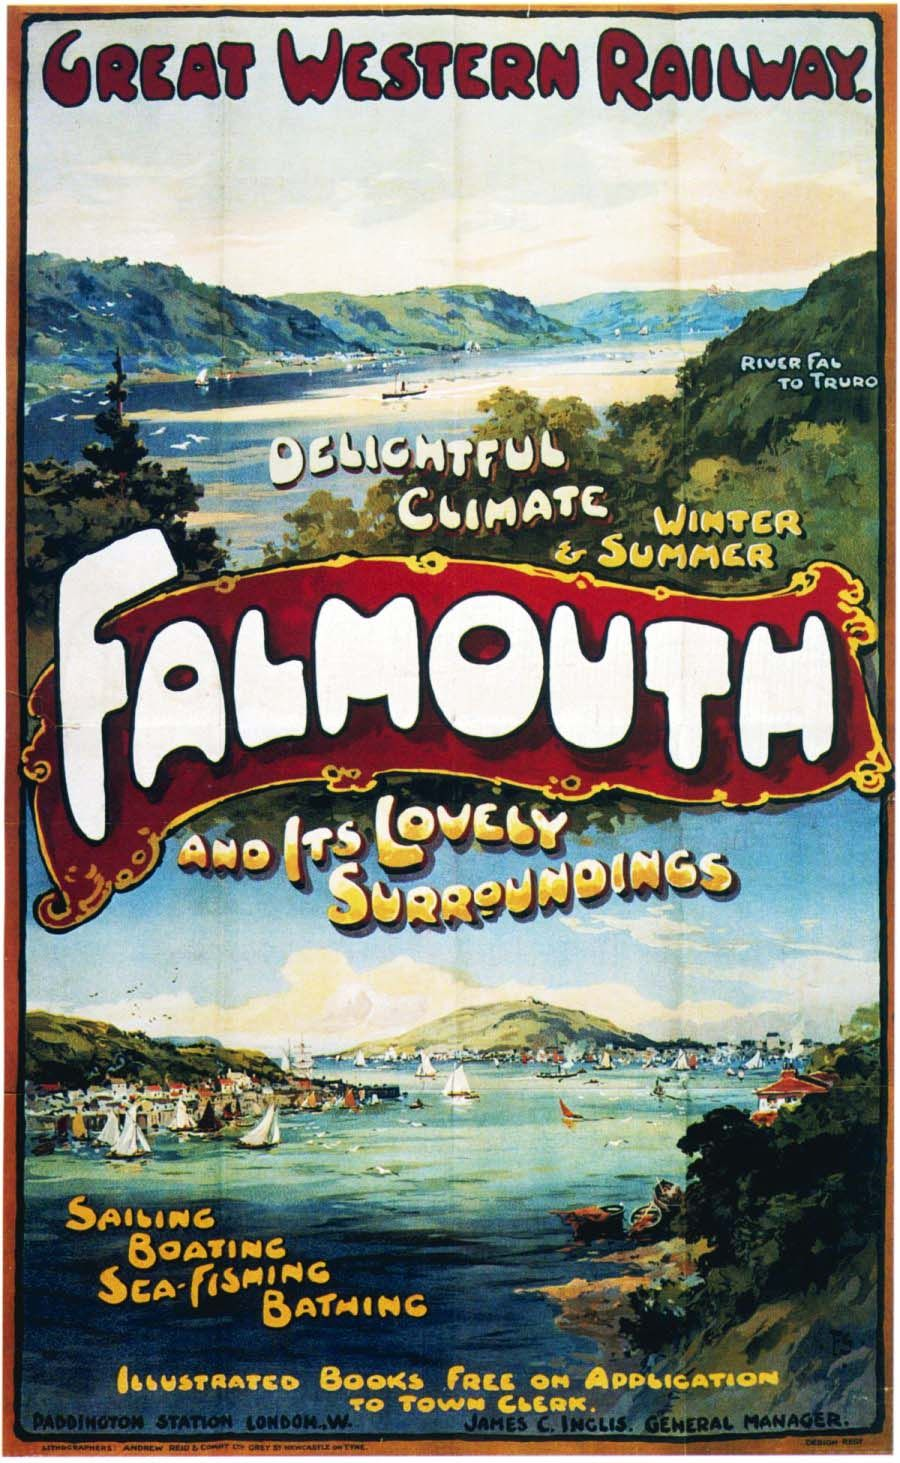 Falmouth, GWR. #travelposters